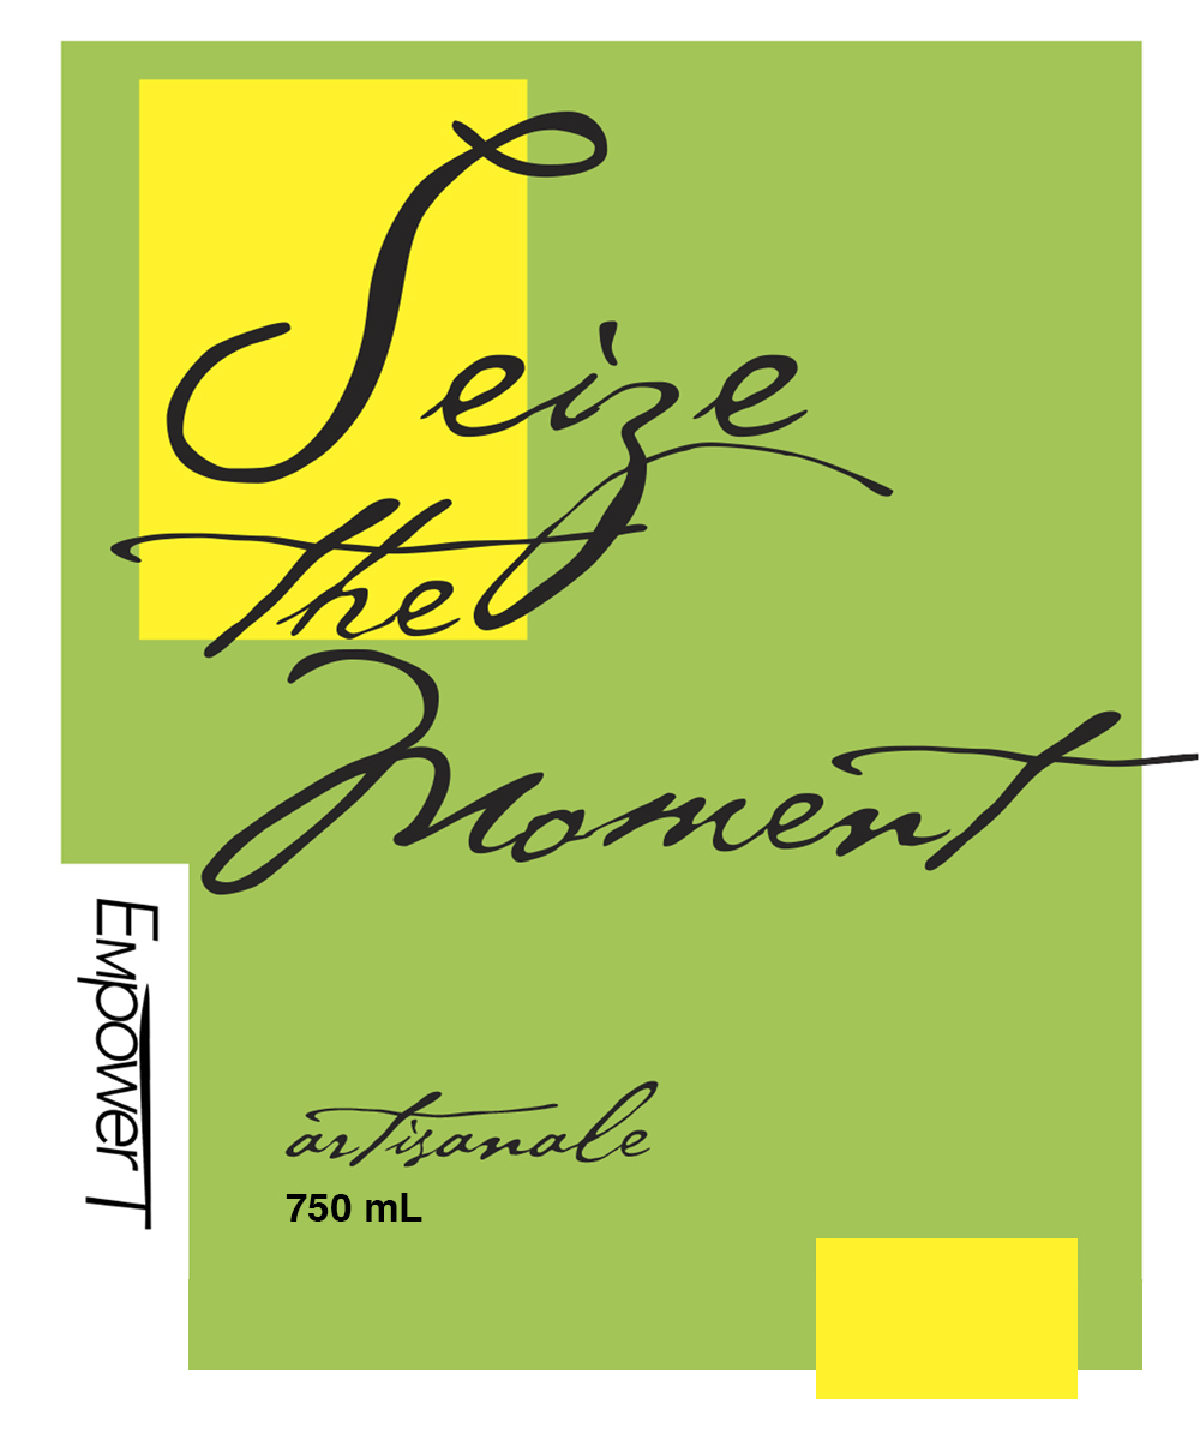 Empower T seize the moment logo